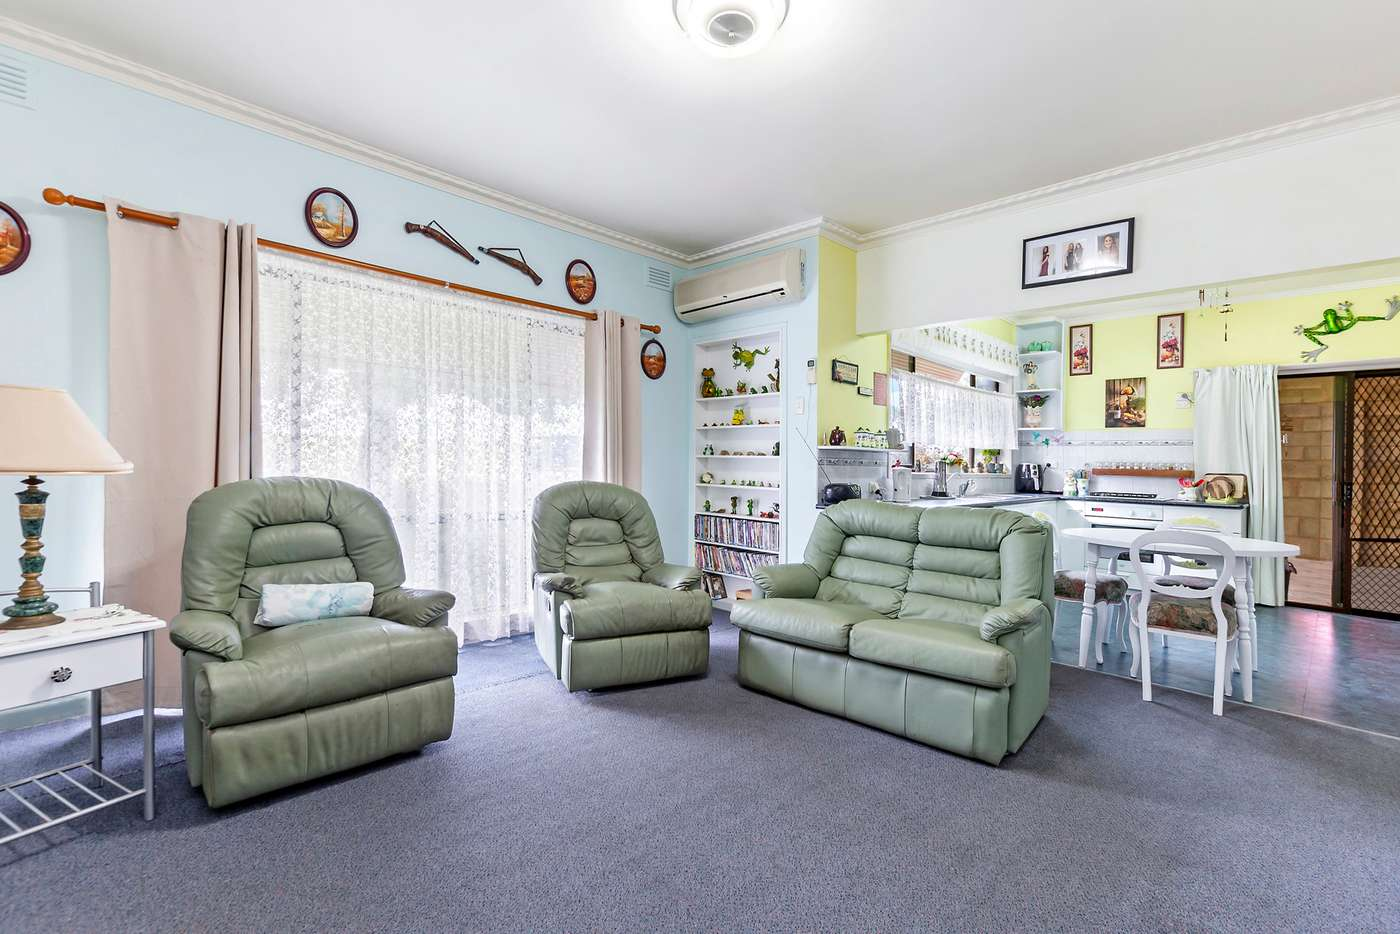 Sixth view of Homely house listing, 83 Learmonth Street, Portland VIC 3305